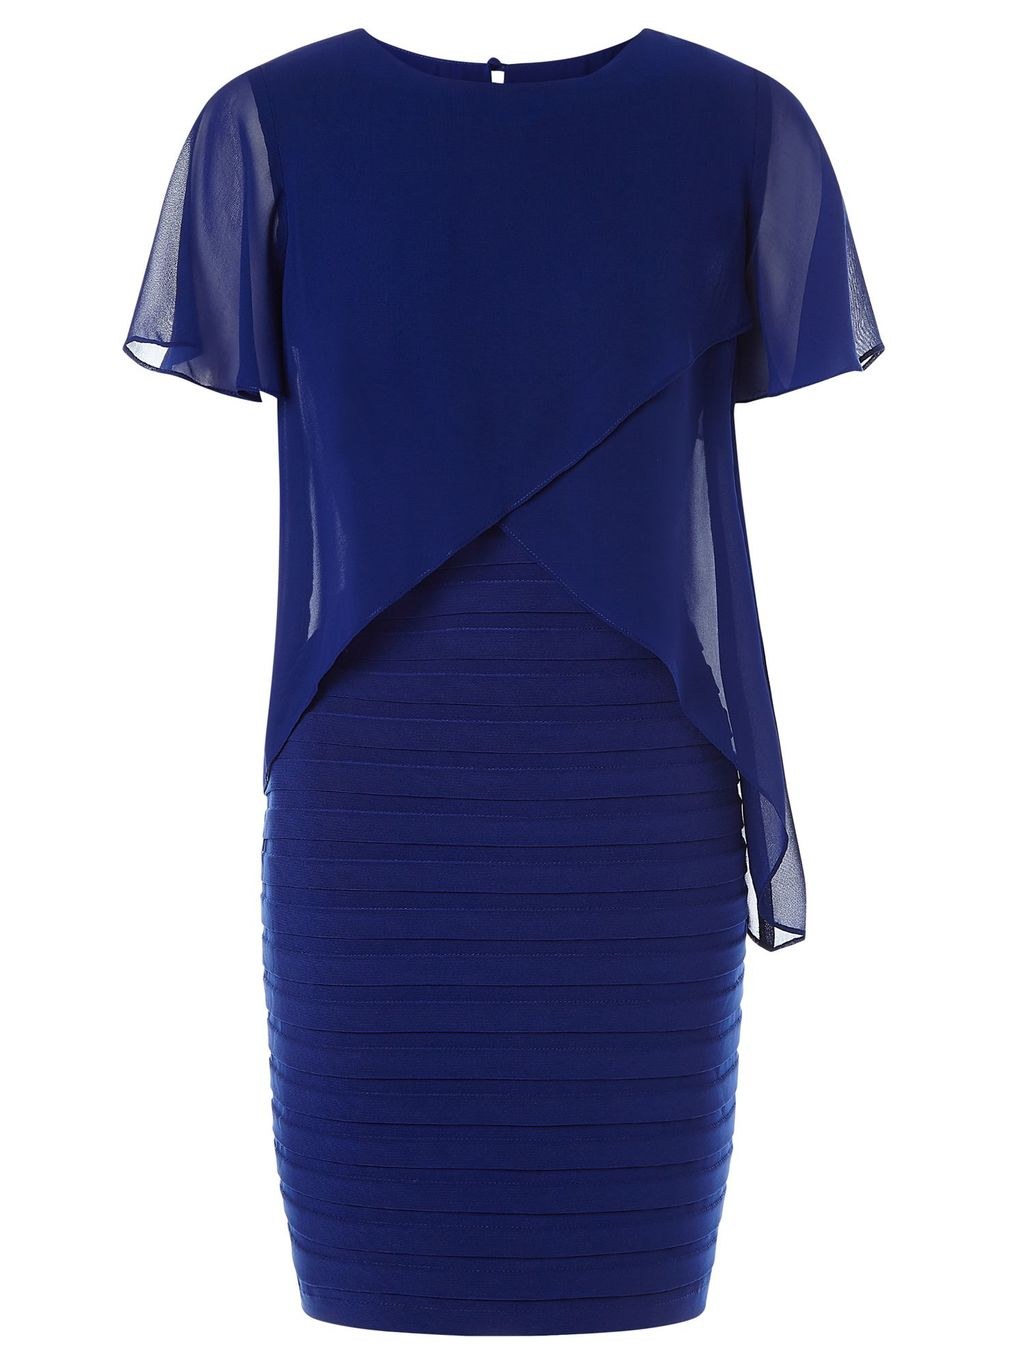 Short Sleeve Layer Bandeau Dress, Blue - style: shift; length: mini; fit: tailored/fitted; pattern: plain; bust detail: sheer at bust; predominant colour: royal blue; occasions: evening, occasion; fibres: polyester/polyamide - stretch; neckline: crew; sleeve length: short sleeve; sleeve style: standard; hip detail: ruffles/tiers/tie detail at hip; pattern type: fabric; texture group: other - light to midweight; season: s/s 2016; wardrobe: event